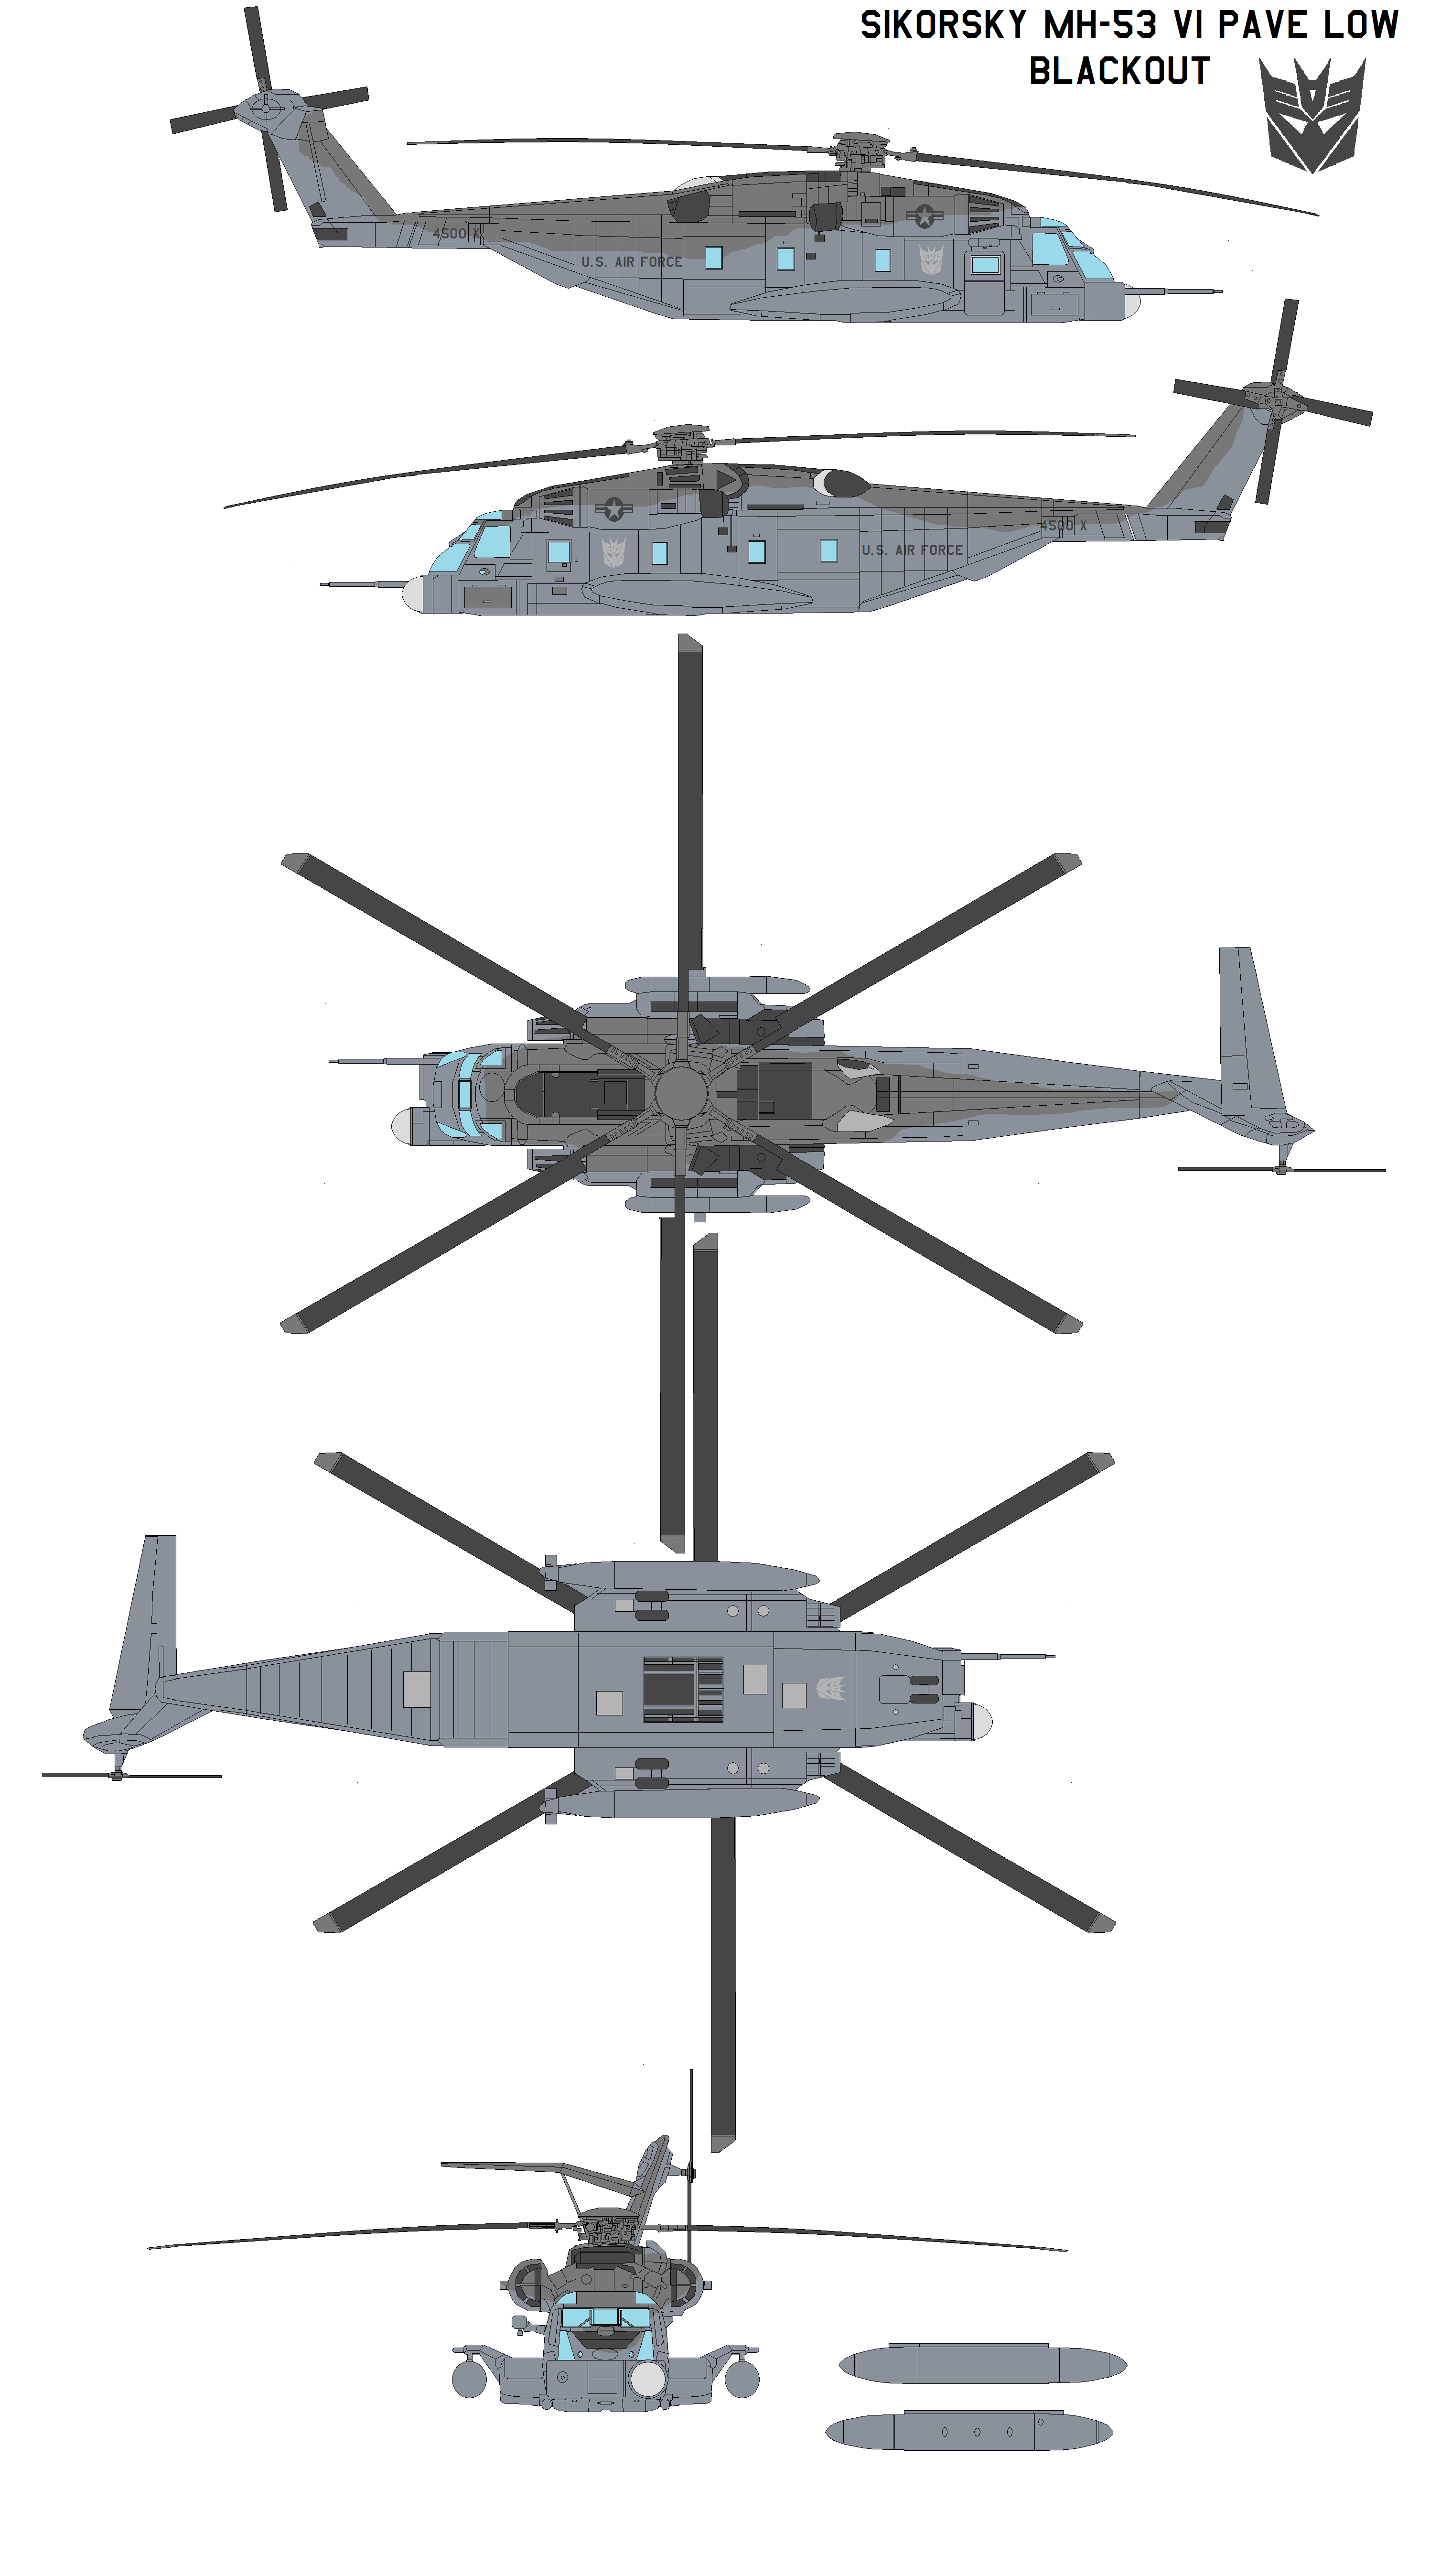 Mh 53 Pave Low Blackout By Bagera3005 On Deviantart Military Helicopter Sikorsky Military Aircraft